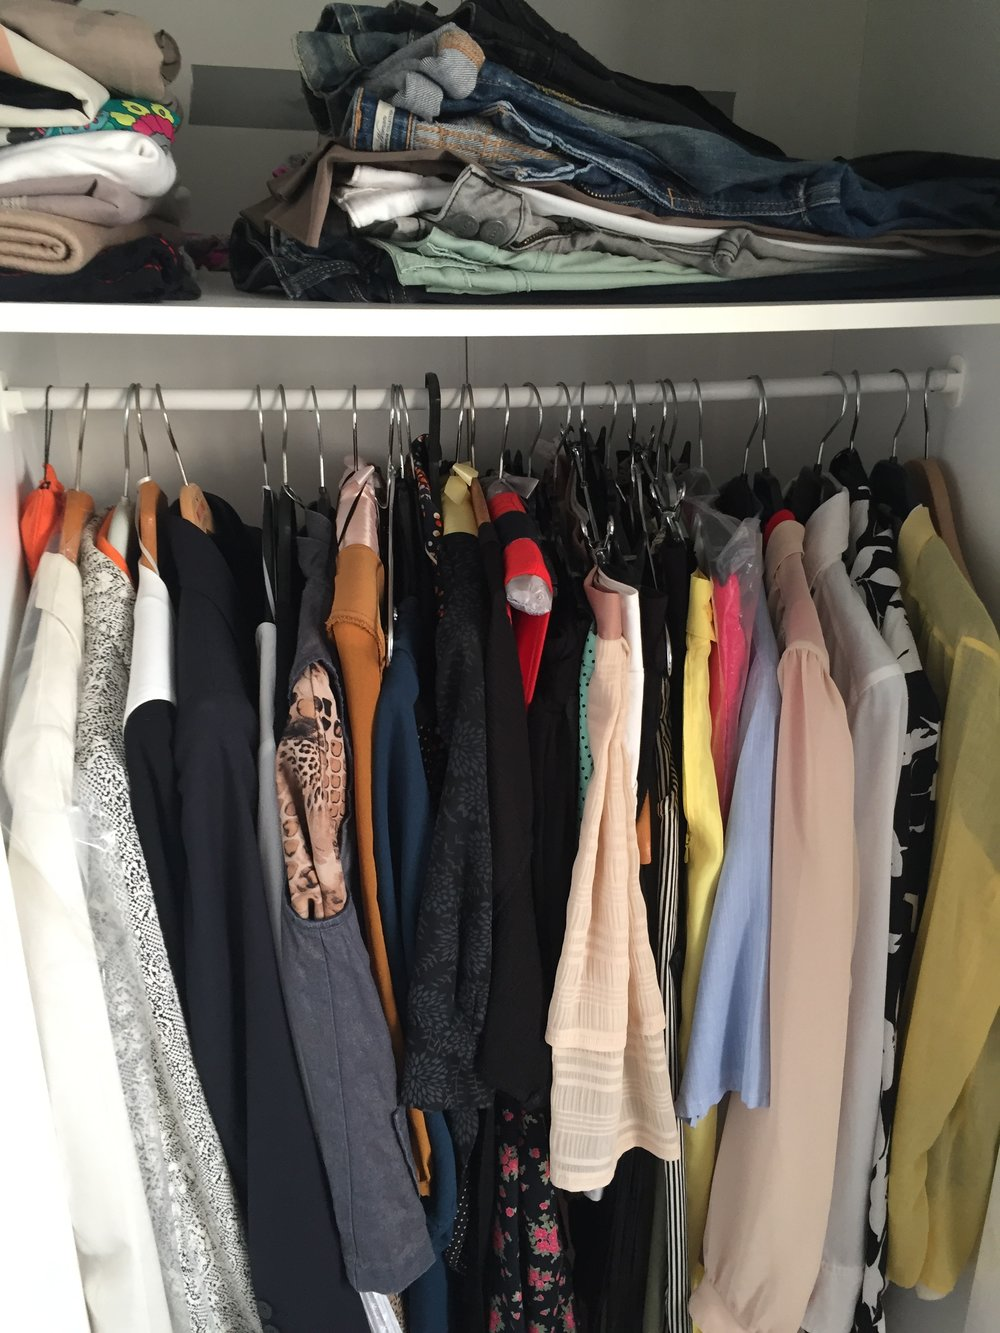 Wardrobe Detox  - Pure Wardrobe Detox, Wardrobe Detox with Analysis and Wardrobe Detox with Analysis and Look-book.